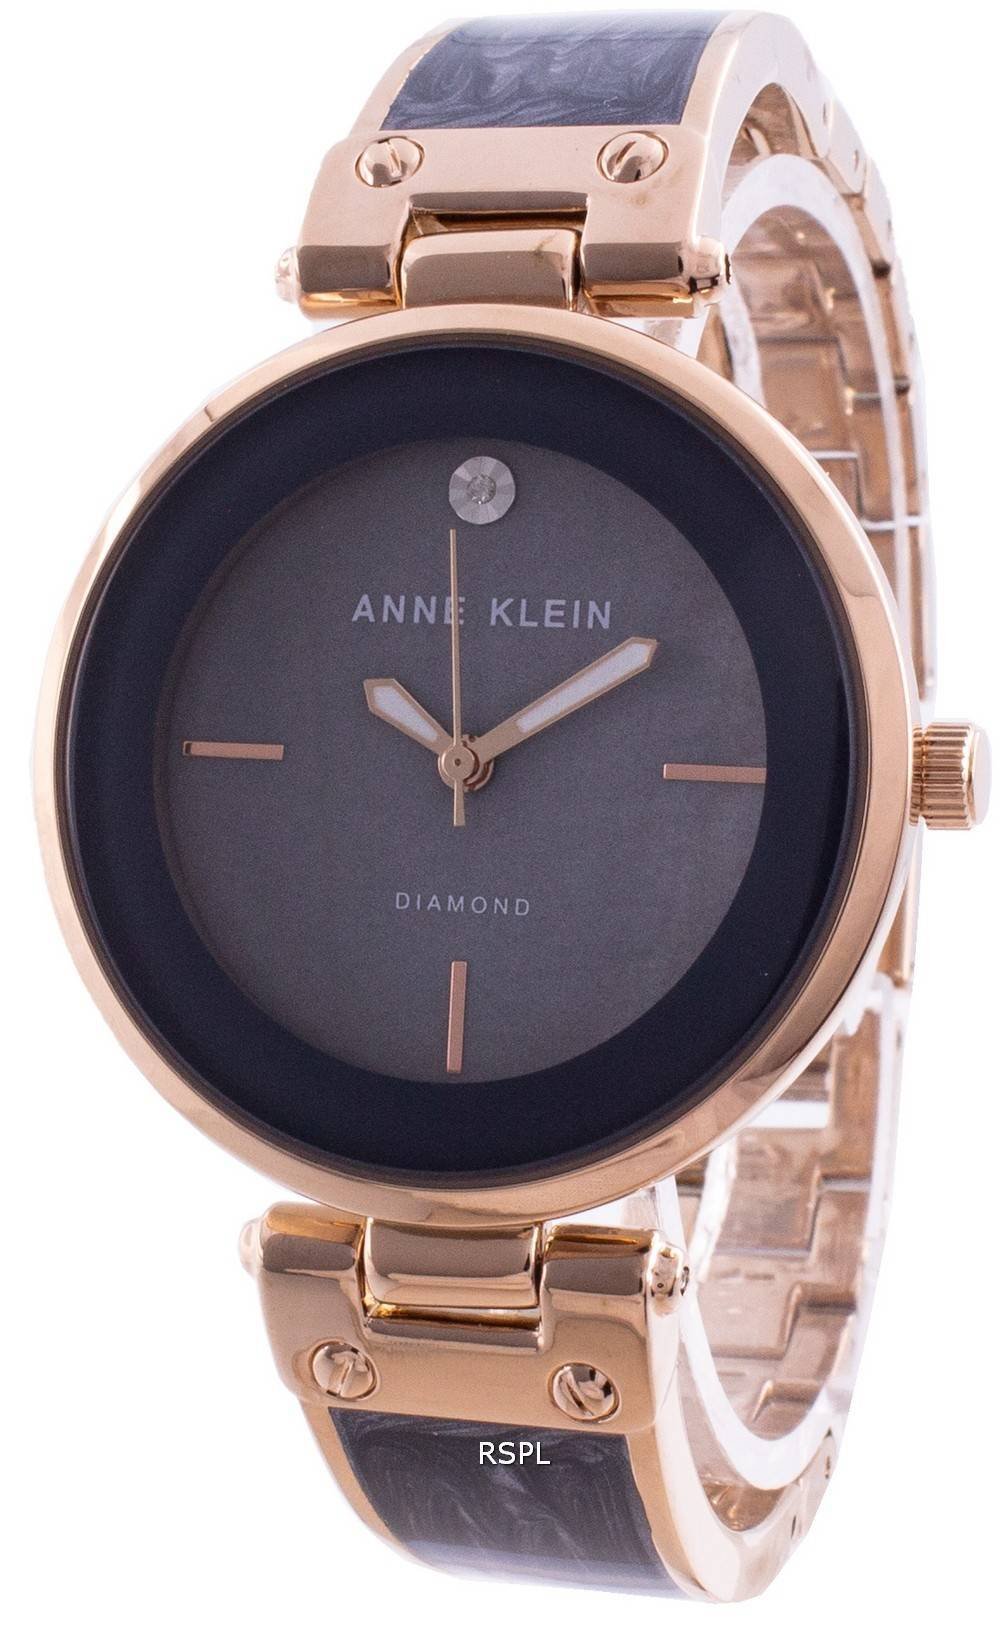 Anne Klein 2512GYRG Quartz Diamond Accents naistenkello